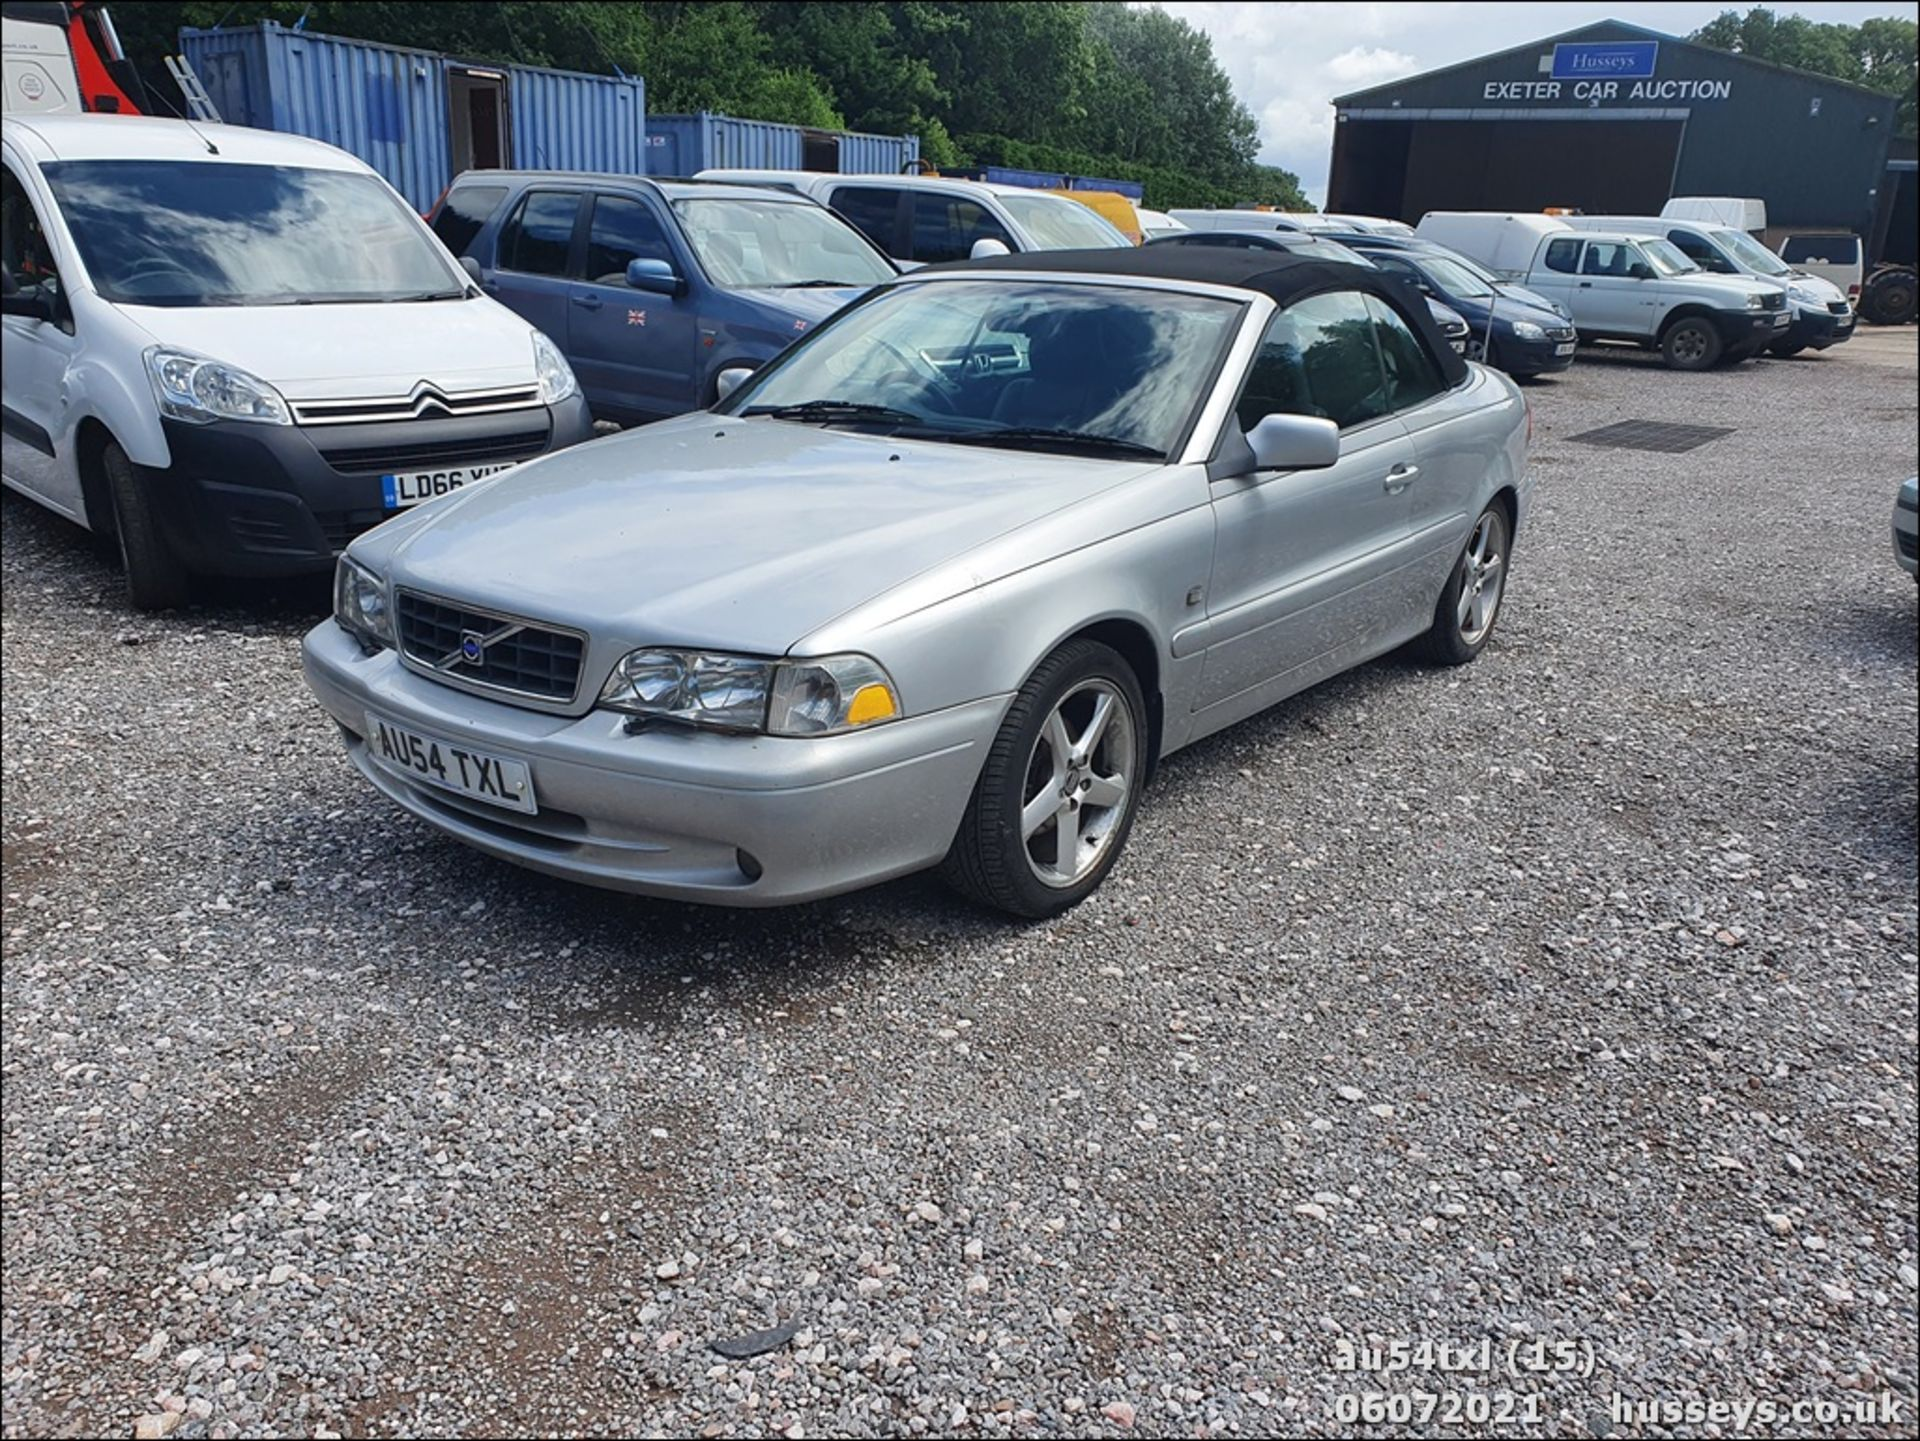 04/54 VOLVO C70 T - 1984cc 2dr Convertible (Silver, 136k) - Image 15 of 15